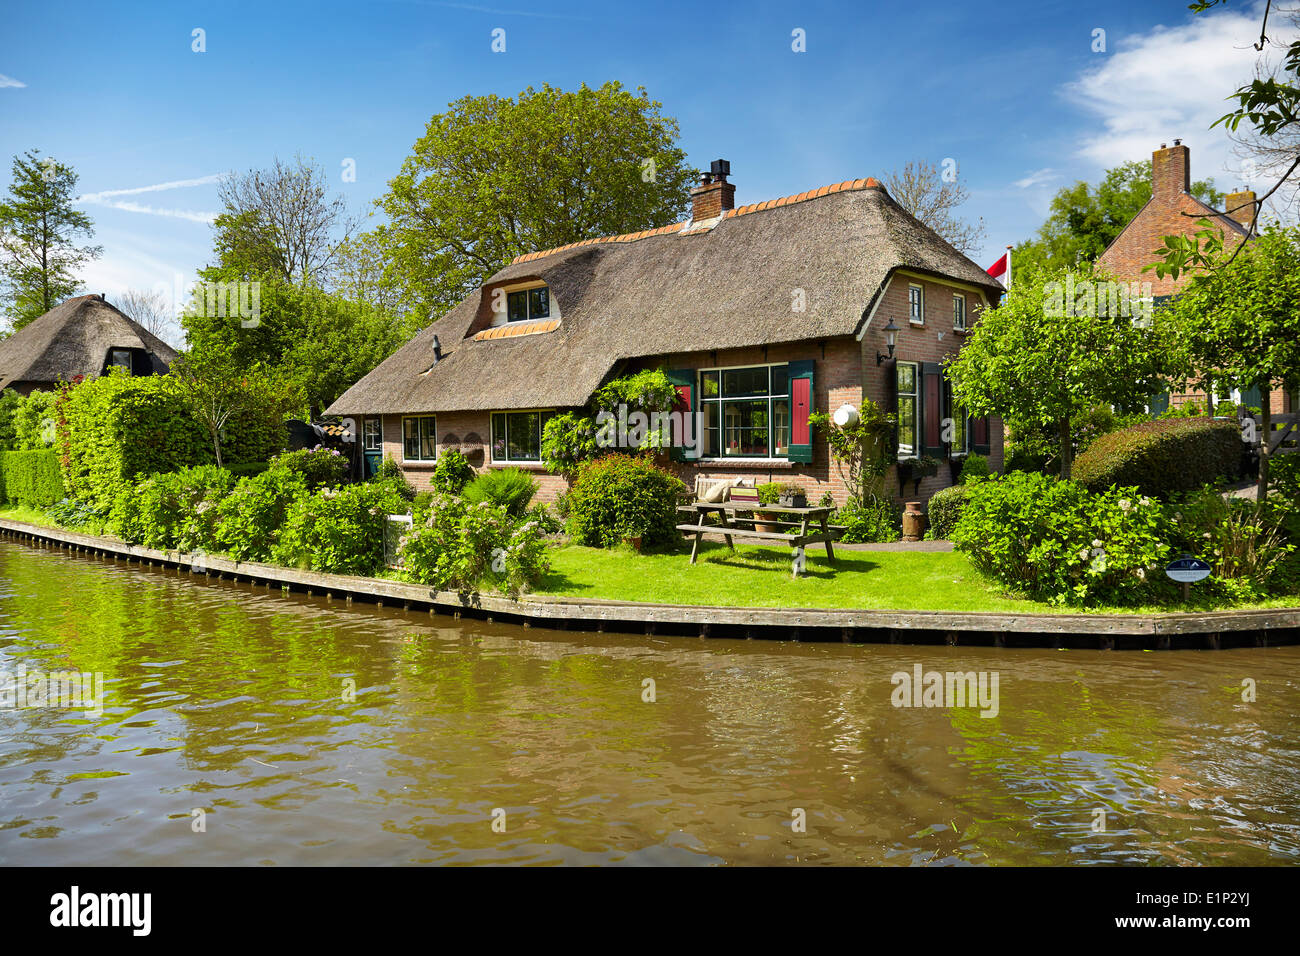 Giethoorn village - Holland Netherlands - Stock Image